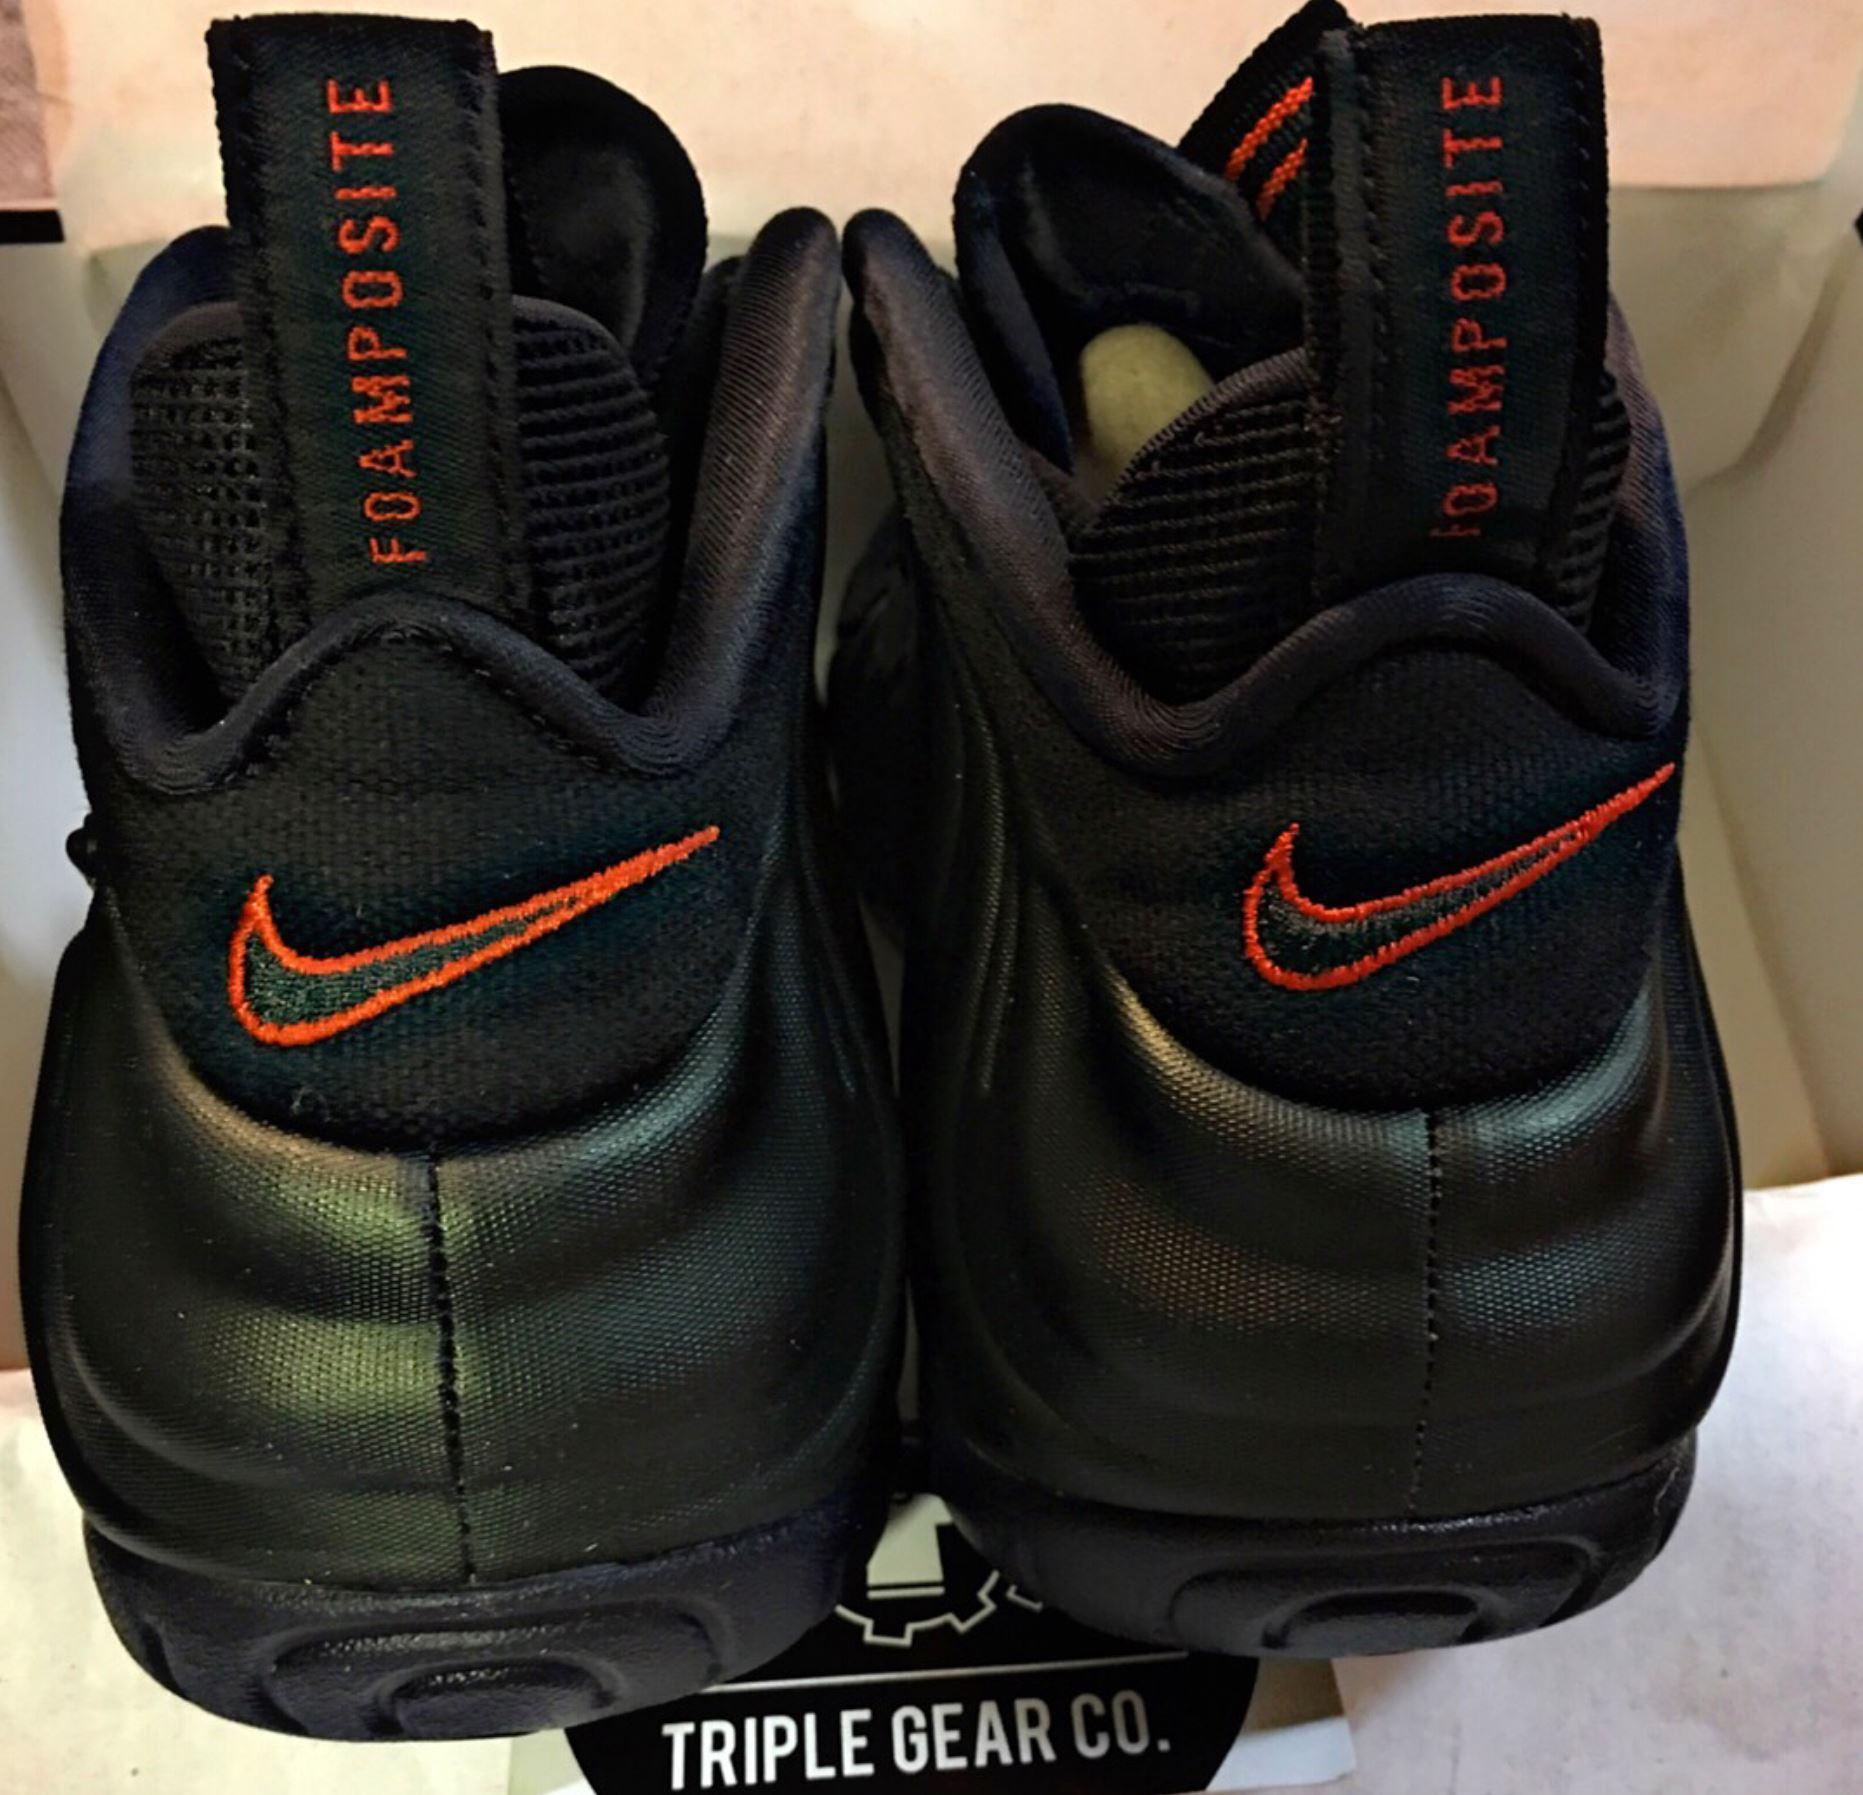 huge discount 5c162 dbfe3 The Nike Air Foamposite Pro 'Sequoia' Release Date is ...